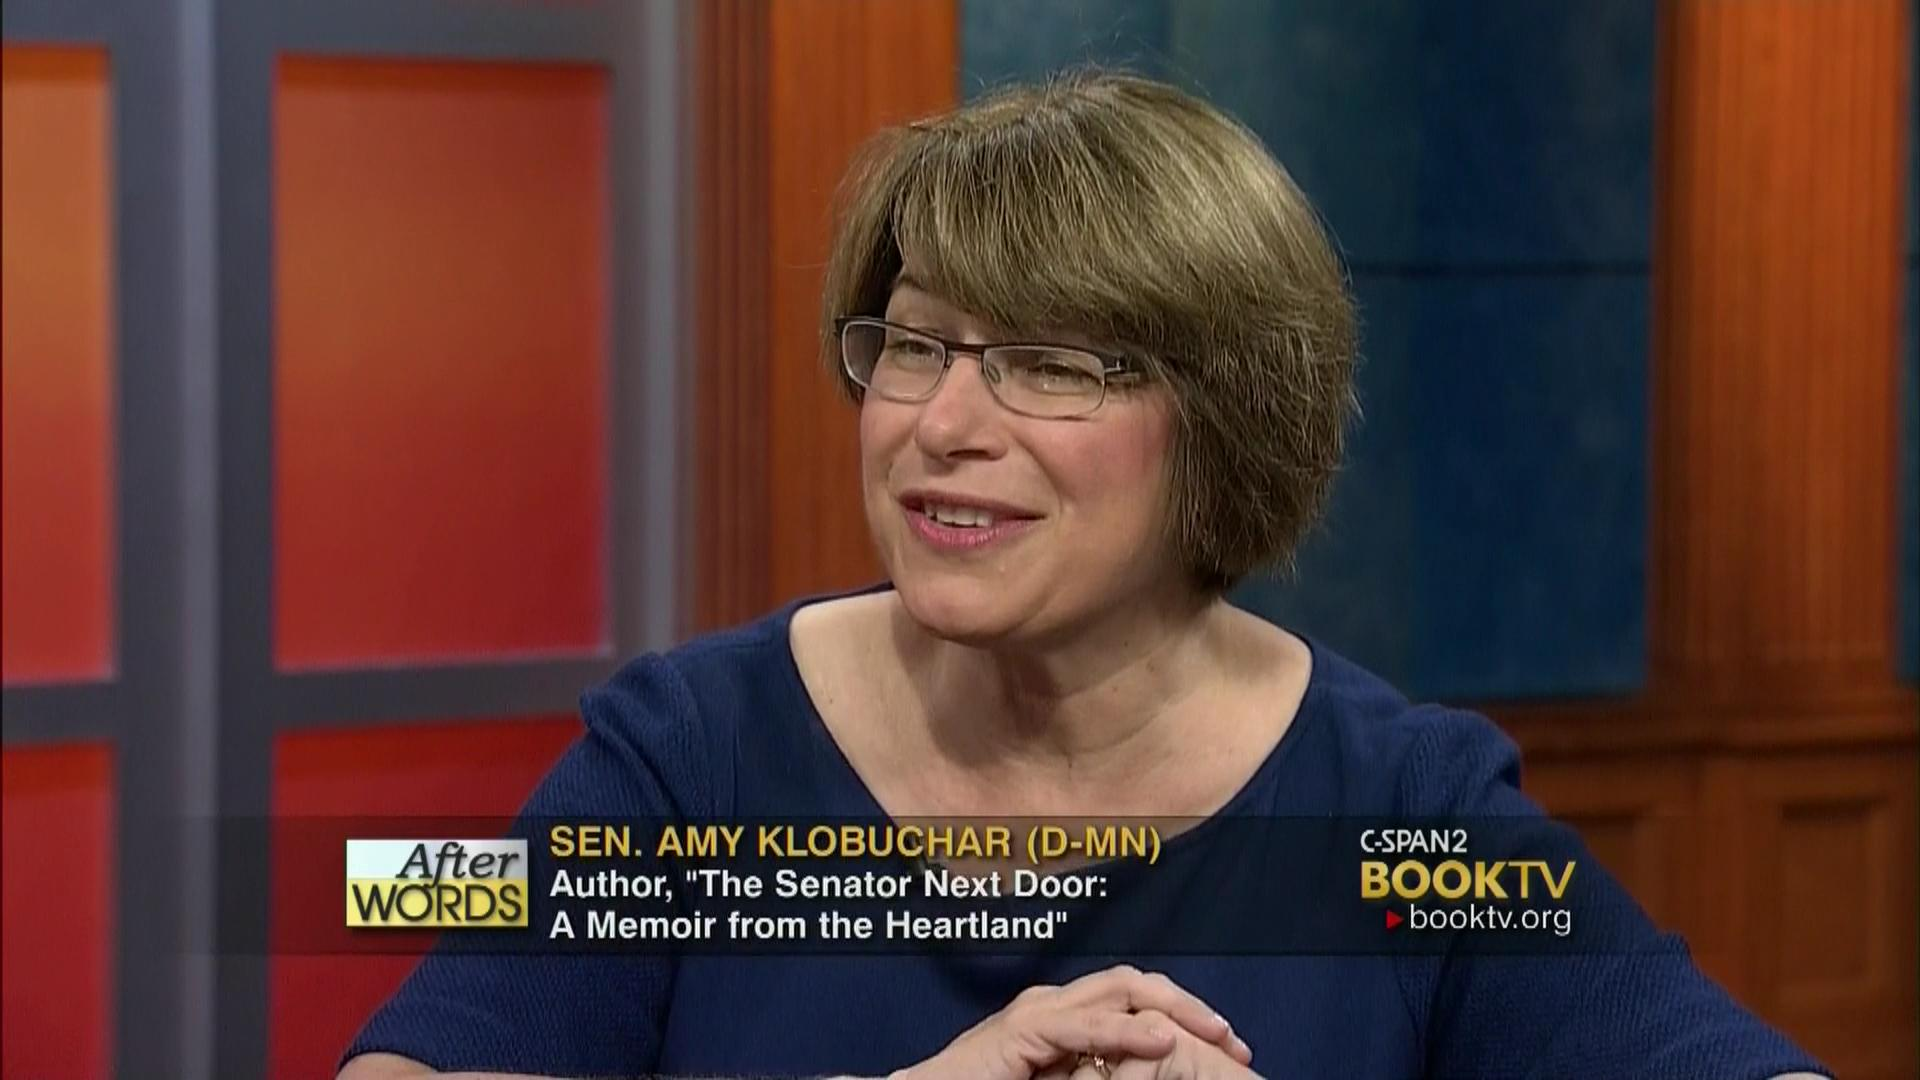 After Words with Amy Klobuchar...